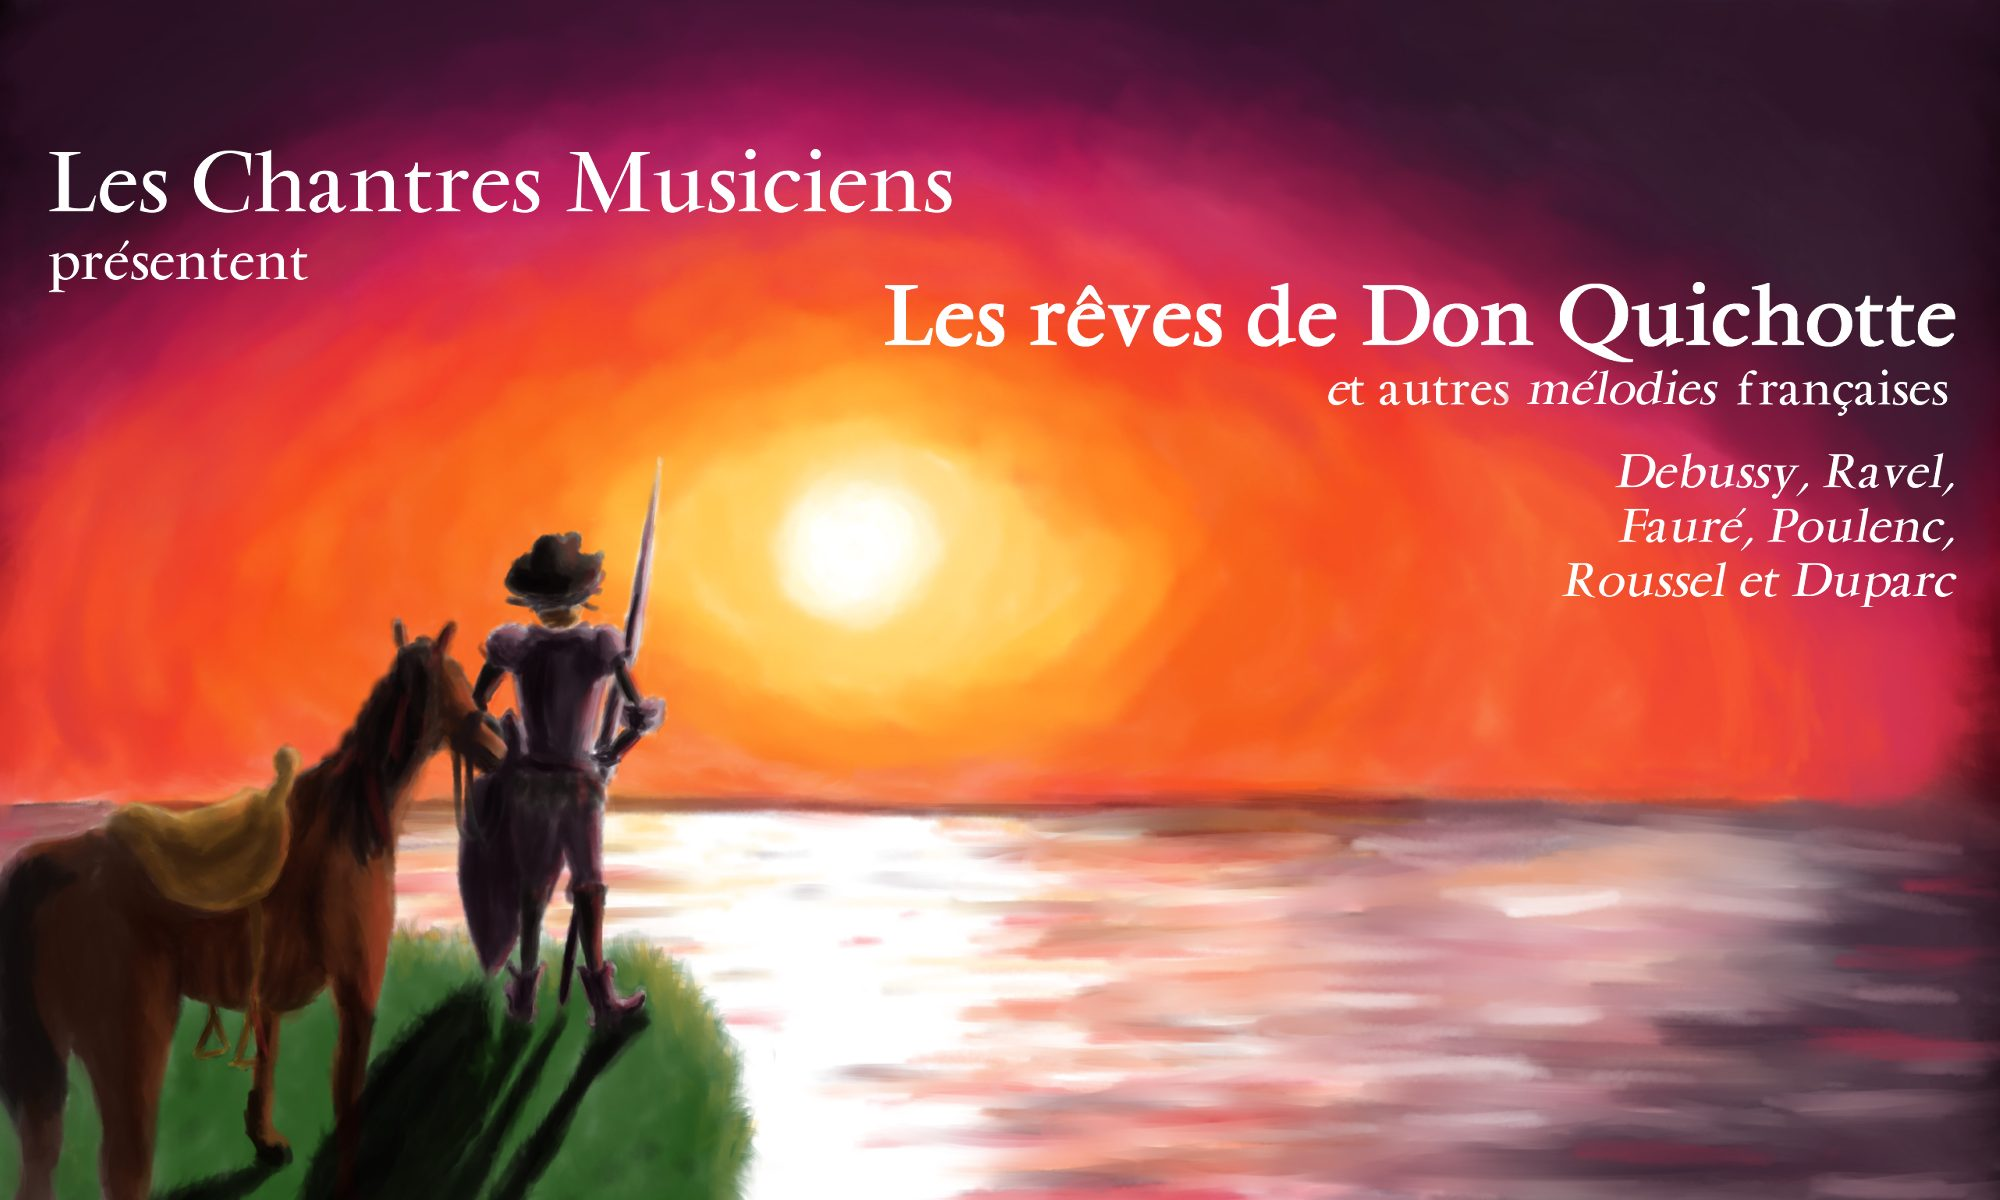 Les Chantres Musiciens